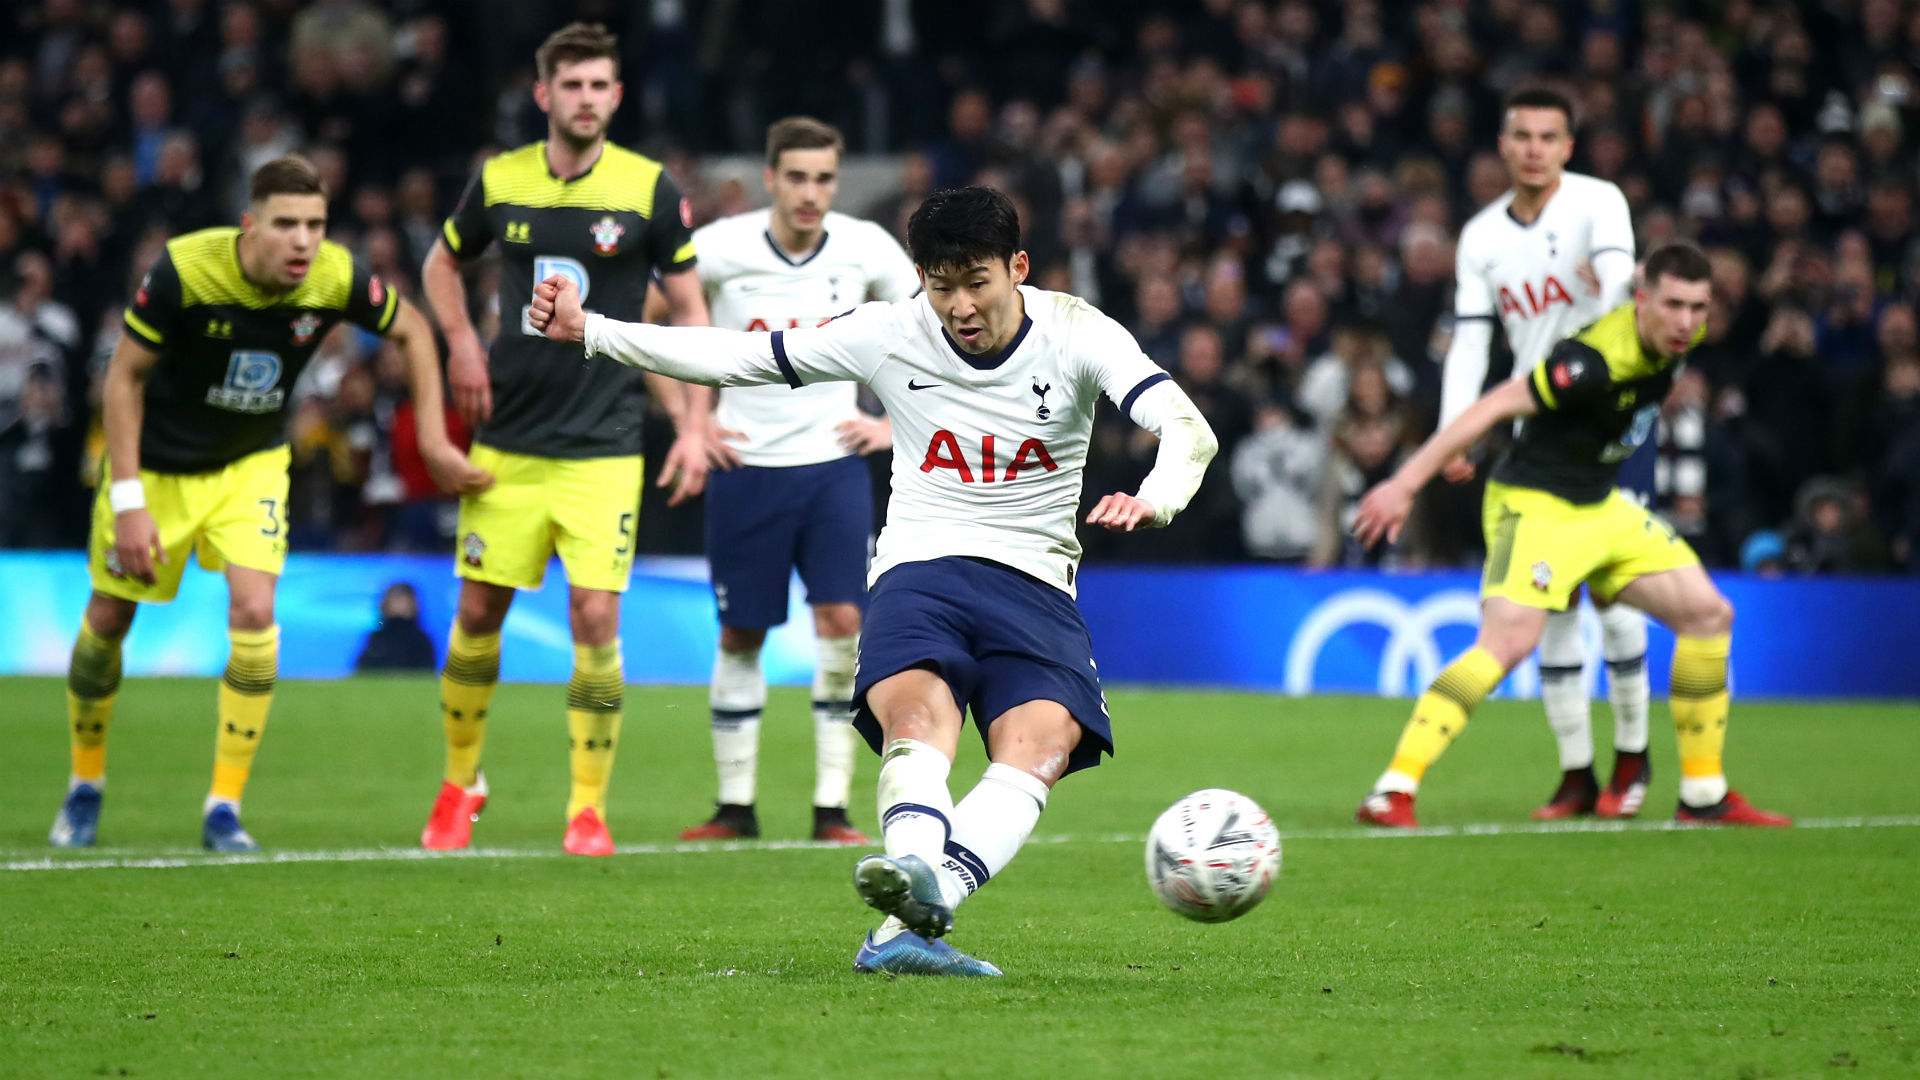 Tottenham 3-2 Southampton: Lucas and Son rescue Mourinho's men in FA Cup thriller